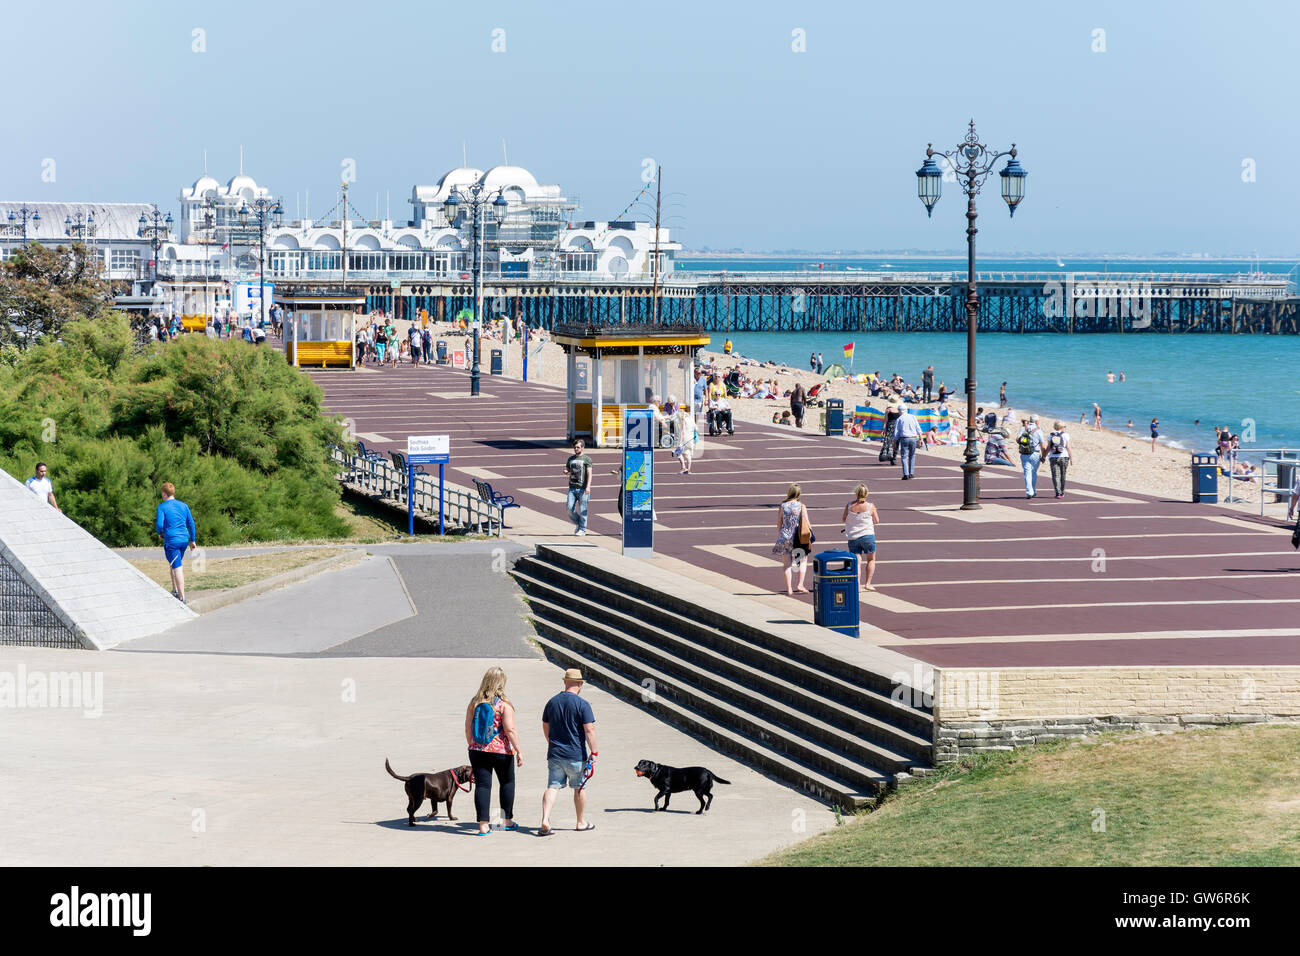 Seafront and South Parade Pier, Clarence Esplanade, Southsea, Portsmouth, Hampshire, England, United Kingdom Stock Photo